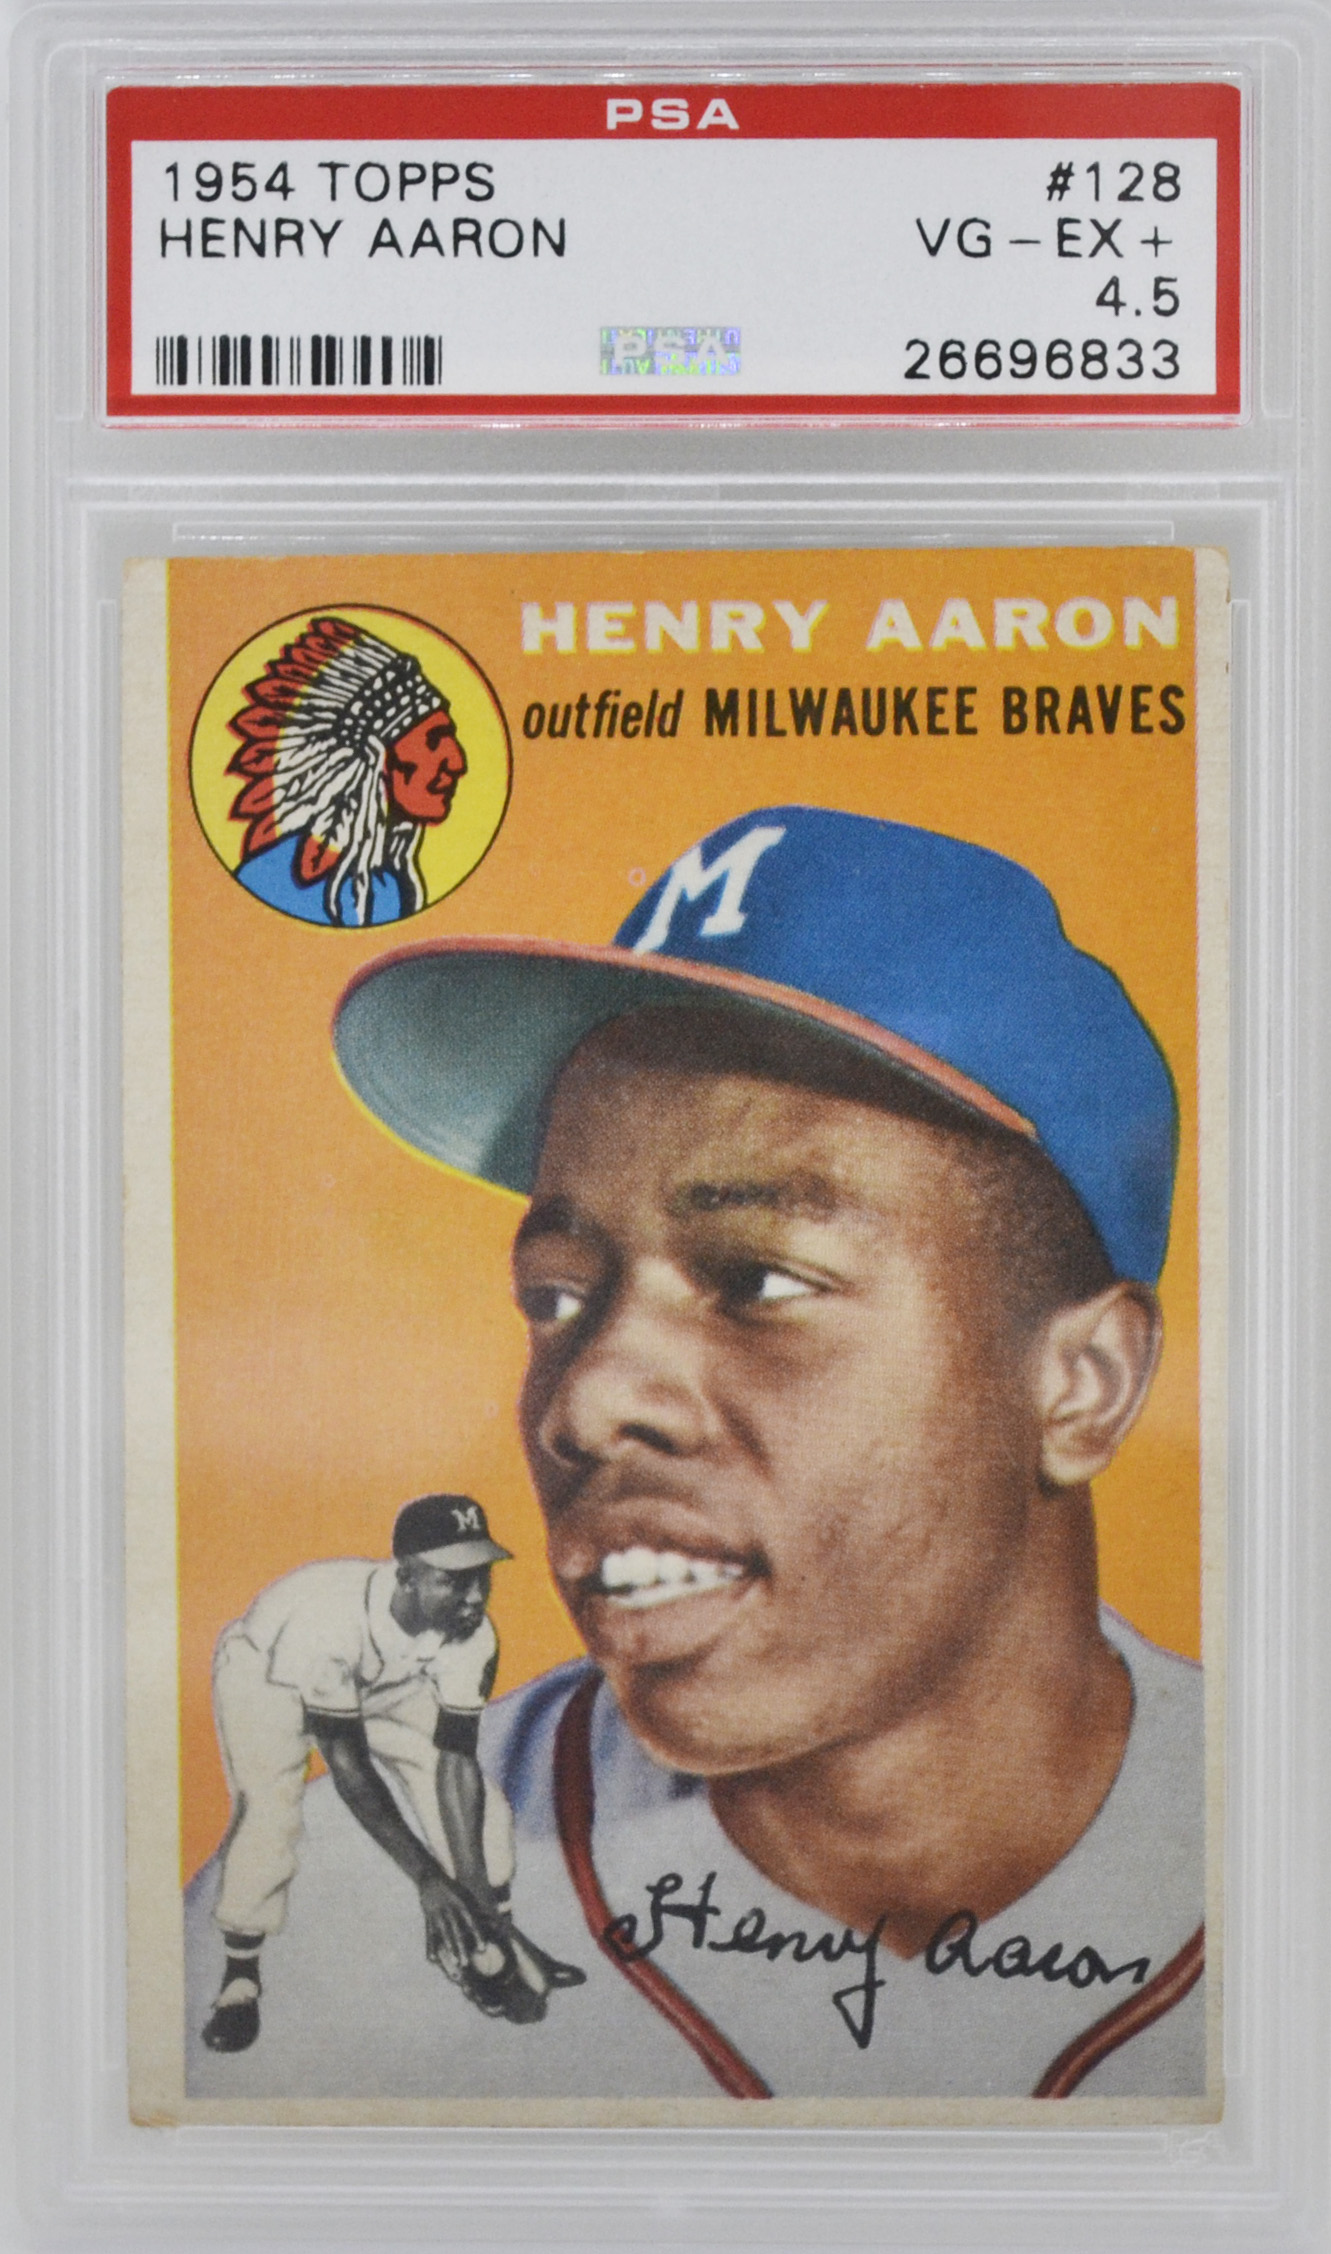 1954 Topps Hank Aaron Rookie Card Rc Psa 45 Top Sports Cards